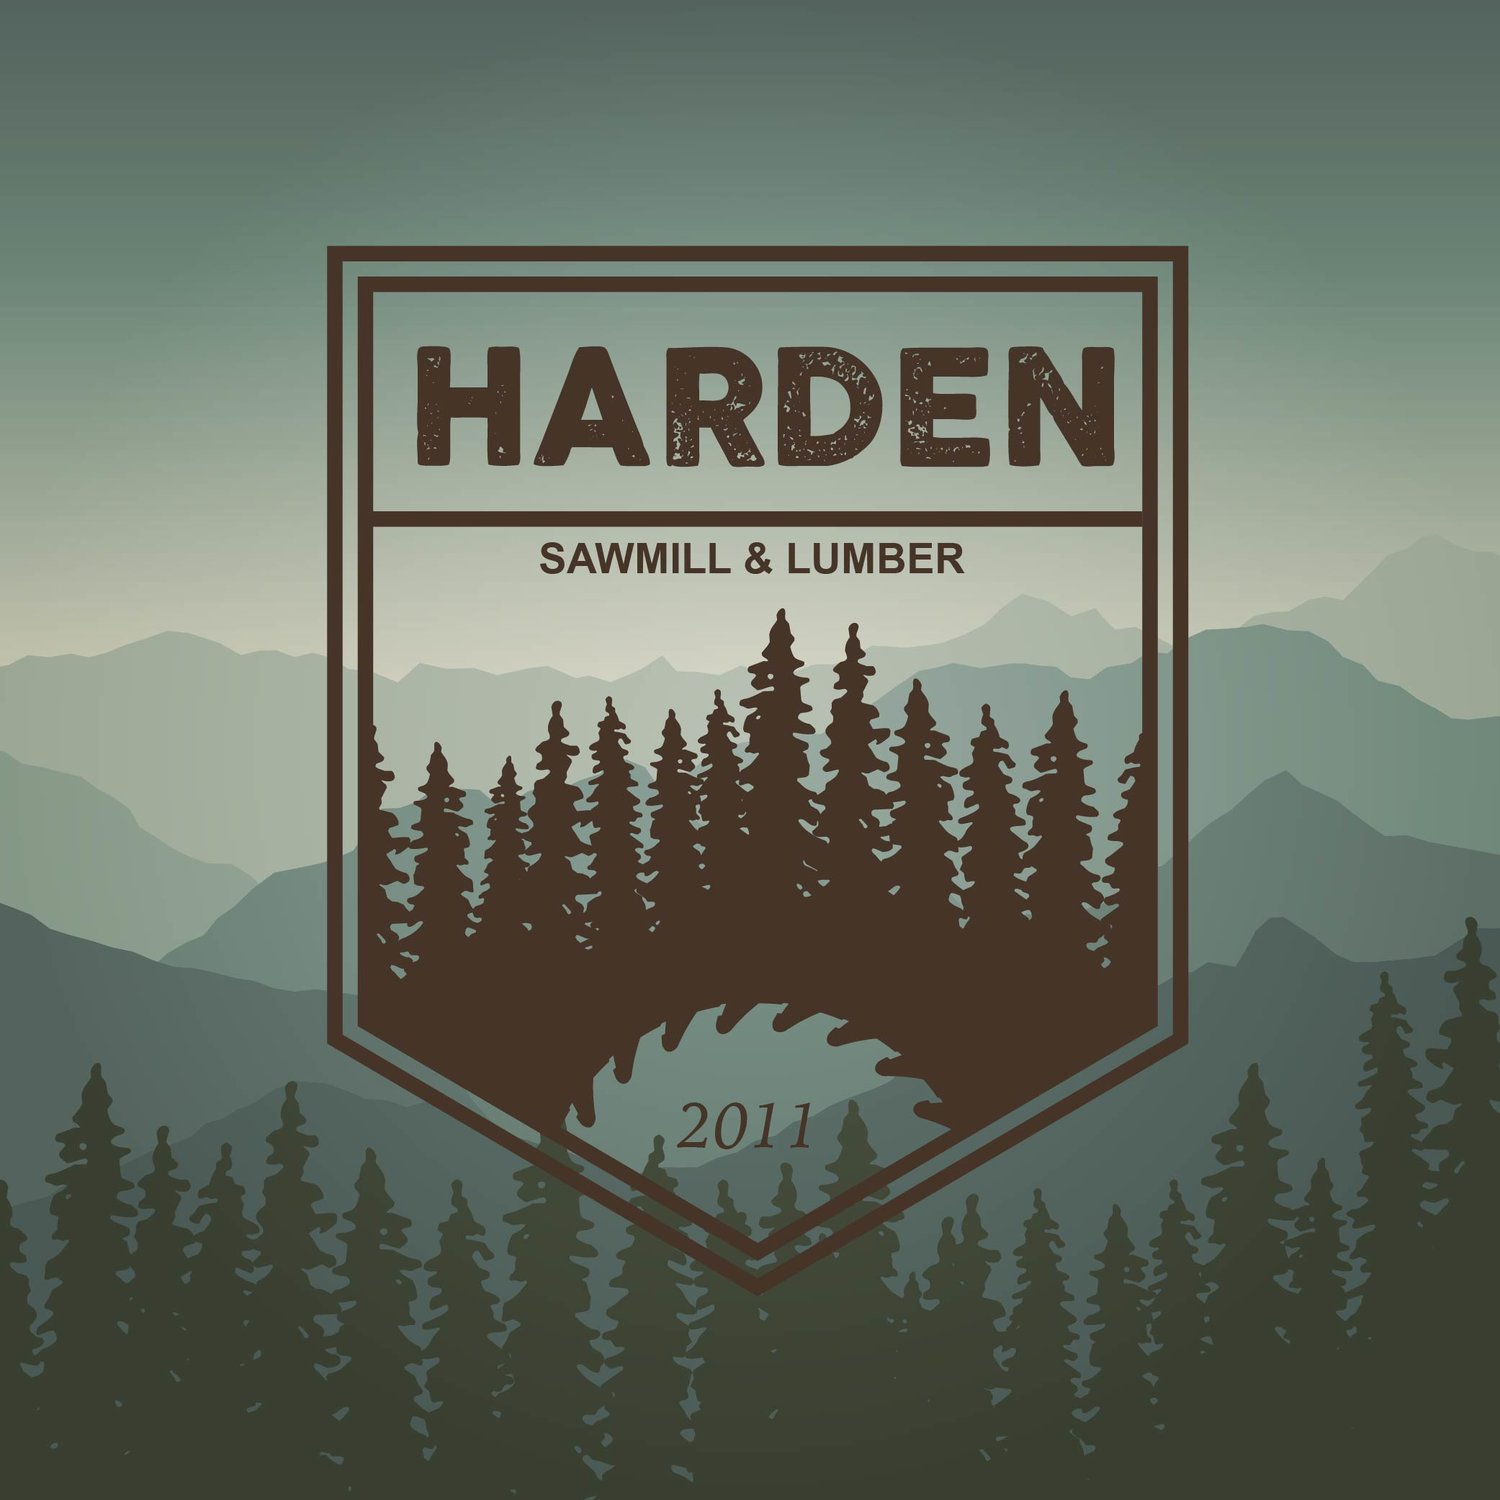 Harden Sawmill and Lumber